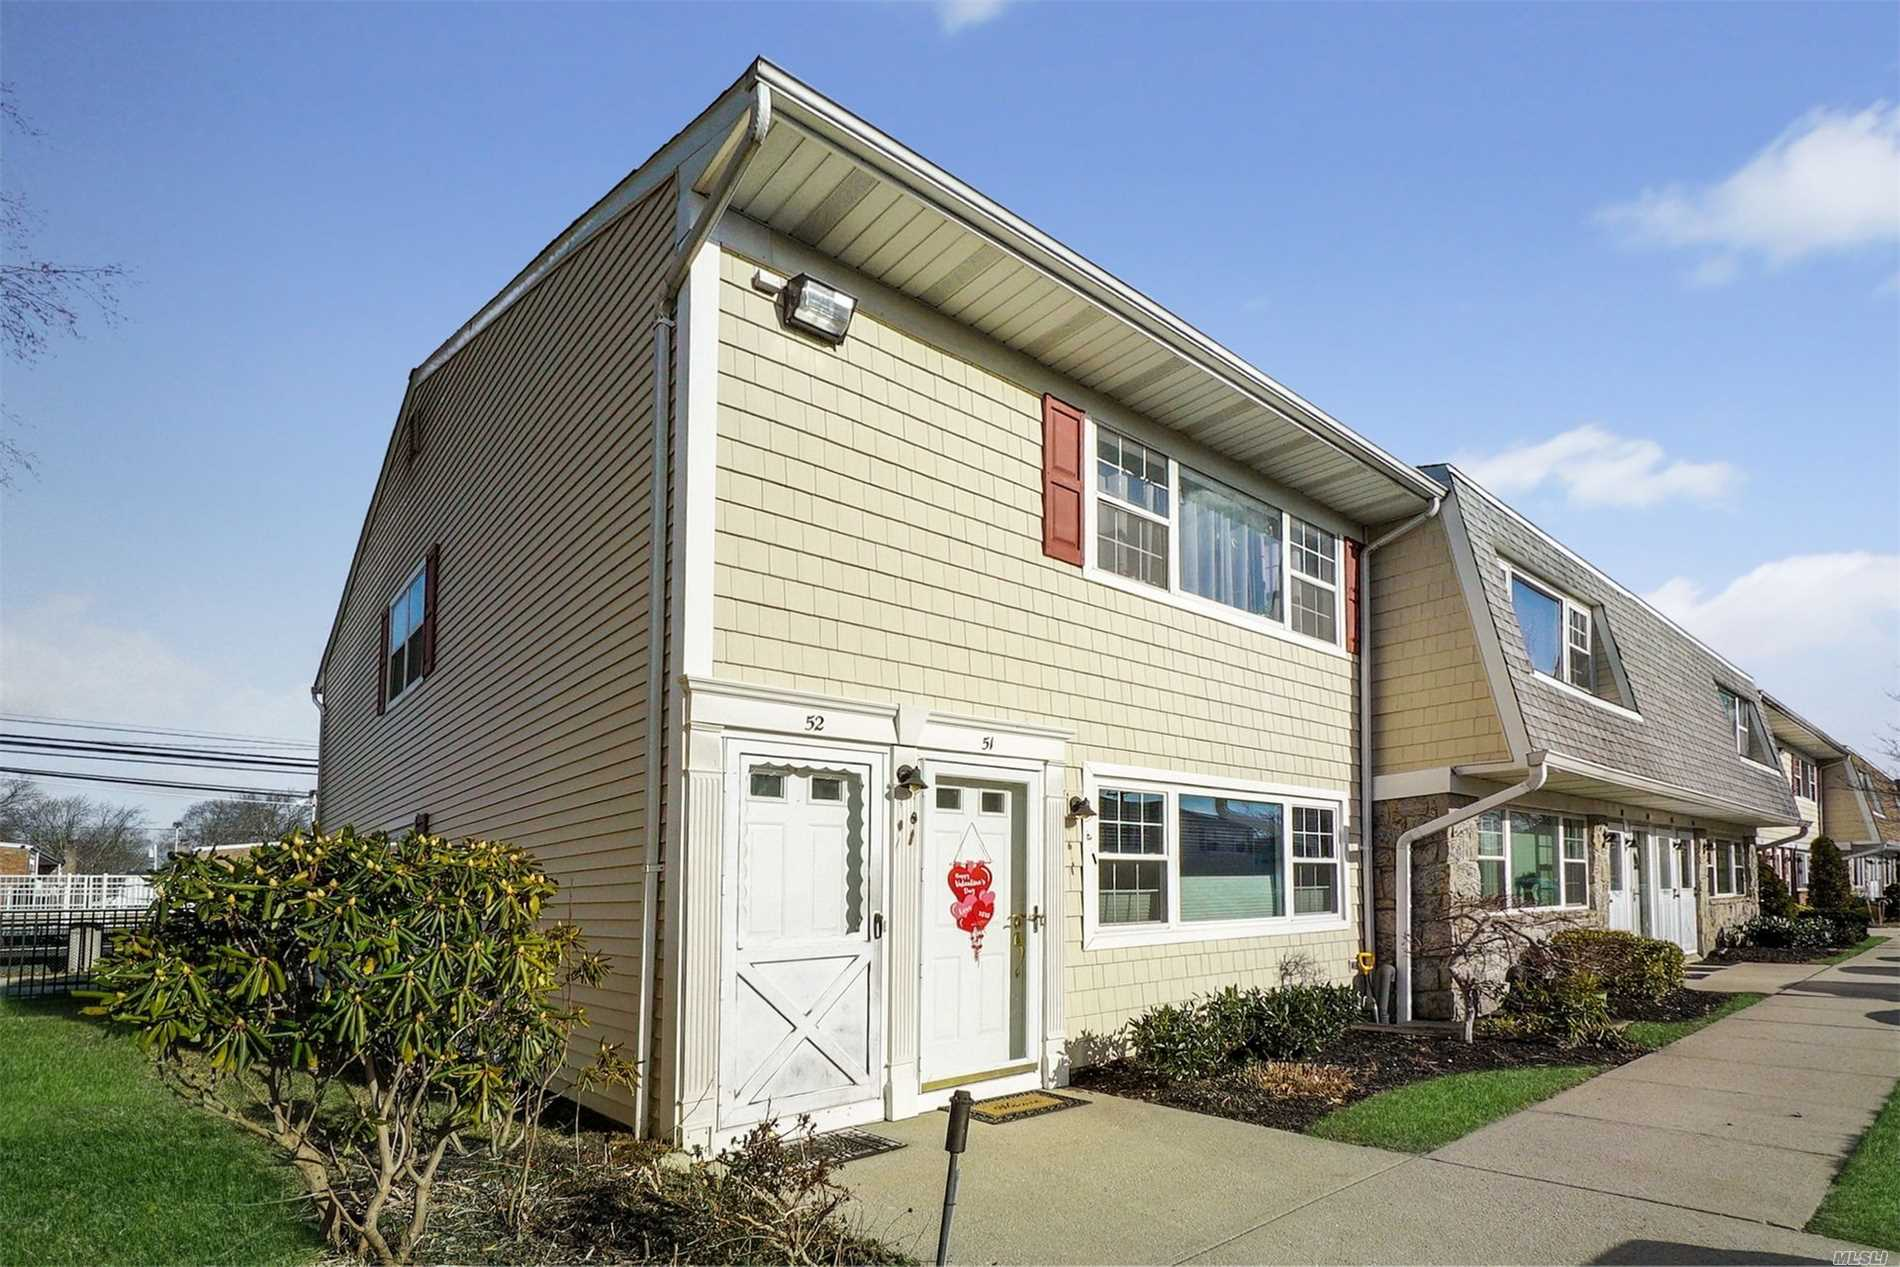 Awesome End Unit Condo In One Of The Hottest Markets In Nassau Co - Farmingdale. Steps To The Vibrant Main St Shops/Restaurants, Steps To The L.I.R.R. Inside You'll Find All Recent Quality Renovations. Pack Your Bags, Your New Home Awaits!